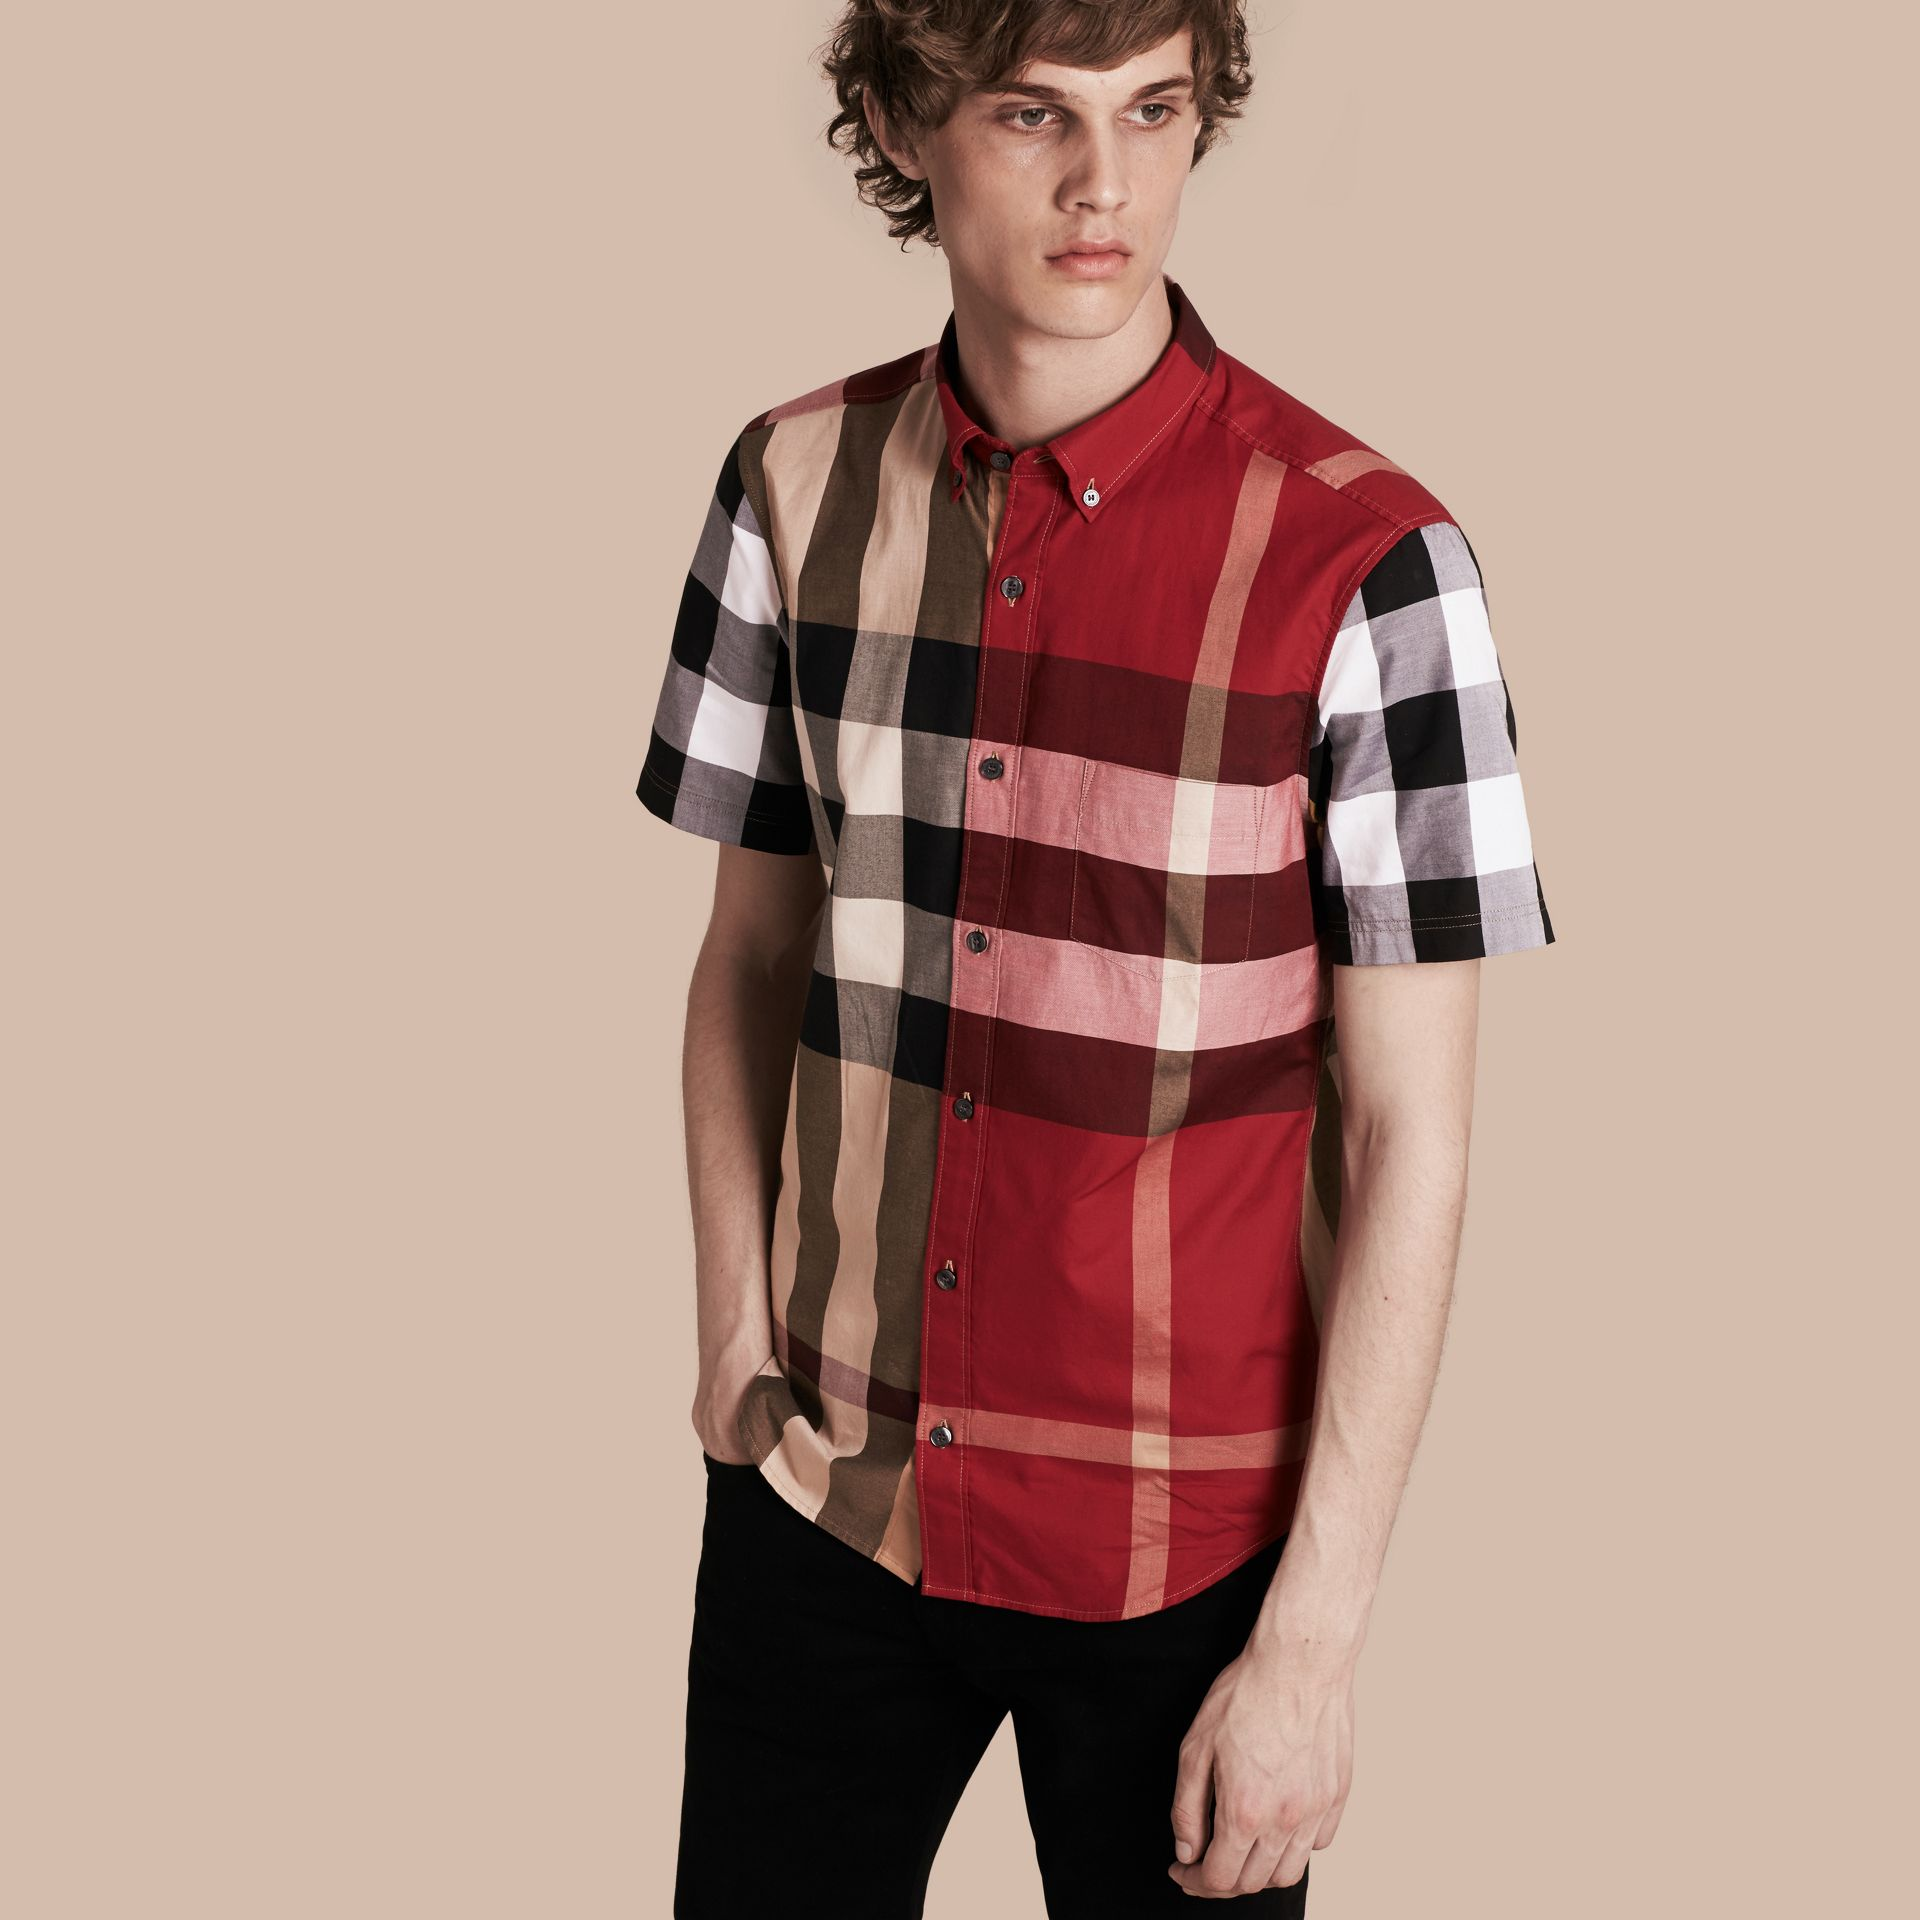 Camel Short-sleeved Colour Block Check Cotton Shirt Camel - gallery image 1